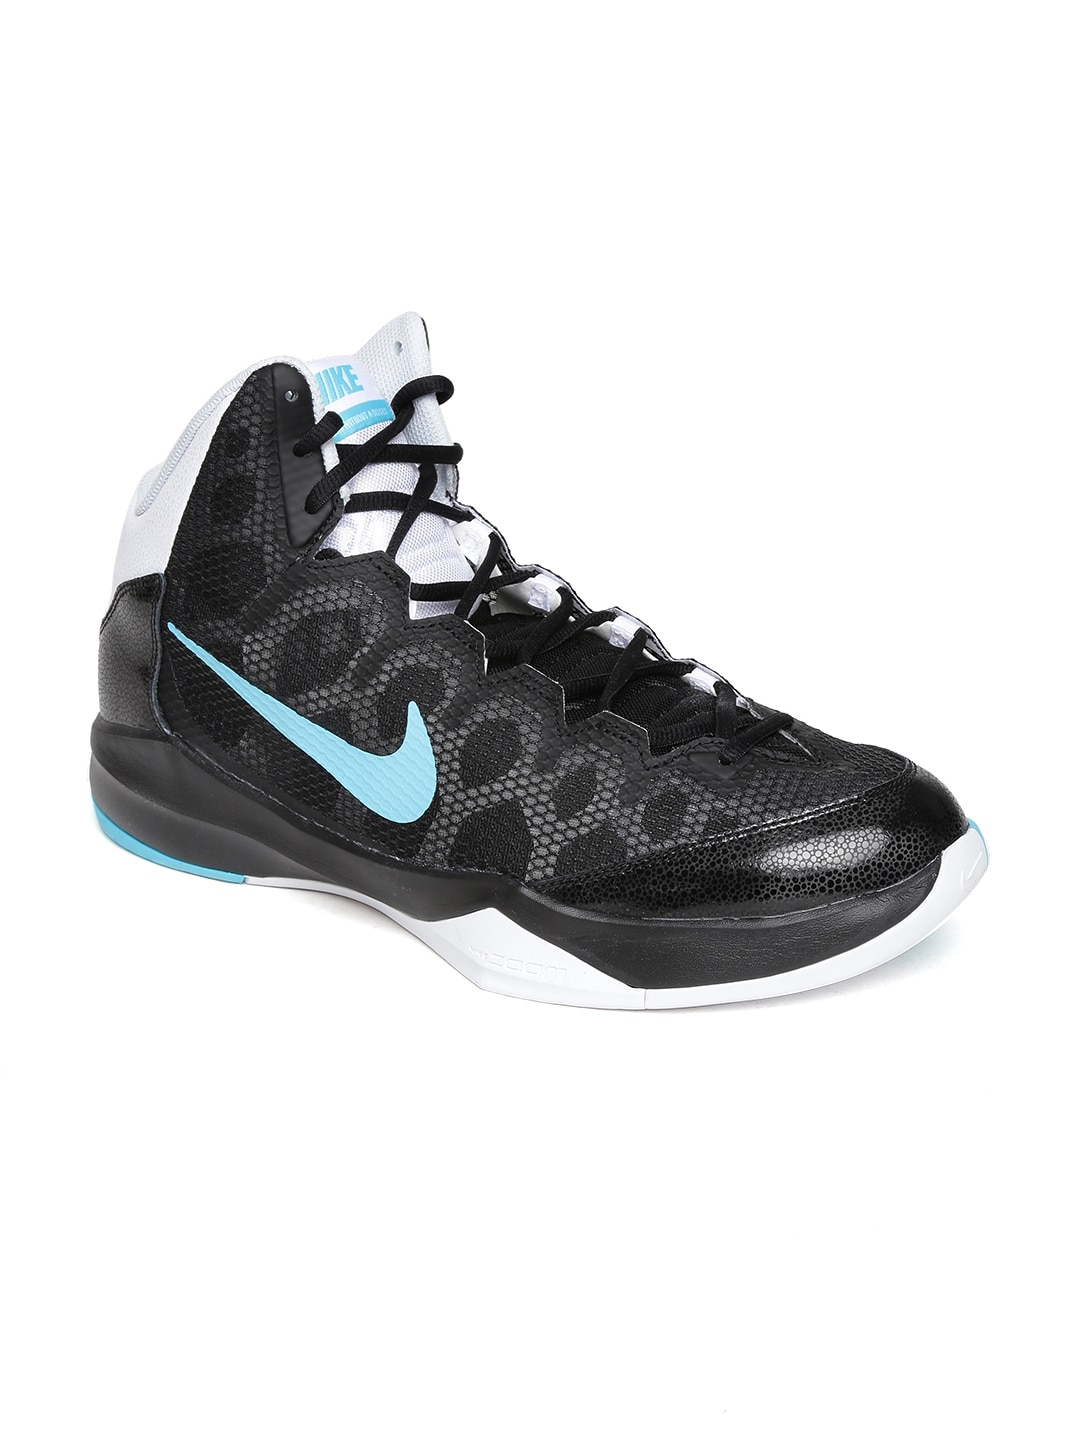 c6fb5e0f9286 Nike 749432-003 Men Black Zoom Without A Doubt Running Shoes ...